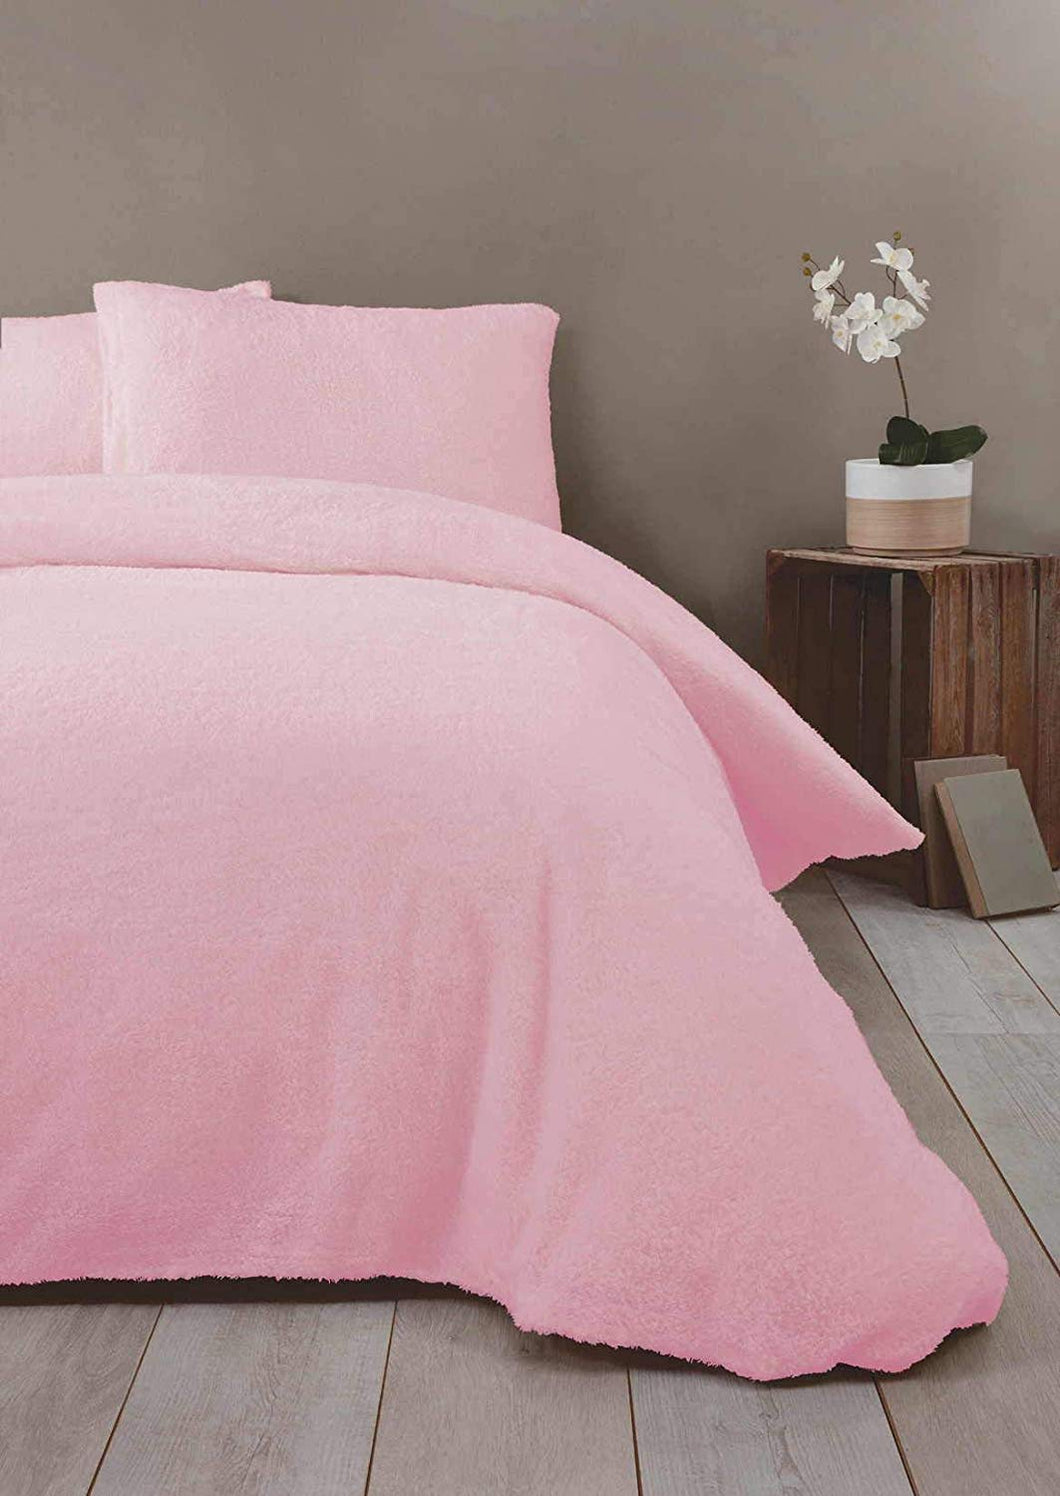 Soft Pink TEDDY BEAR Snuggle Fleece Duvet Cover Set by Rapport